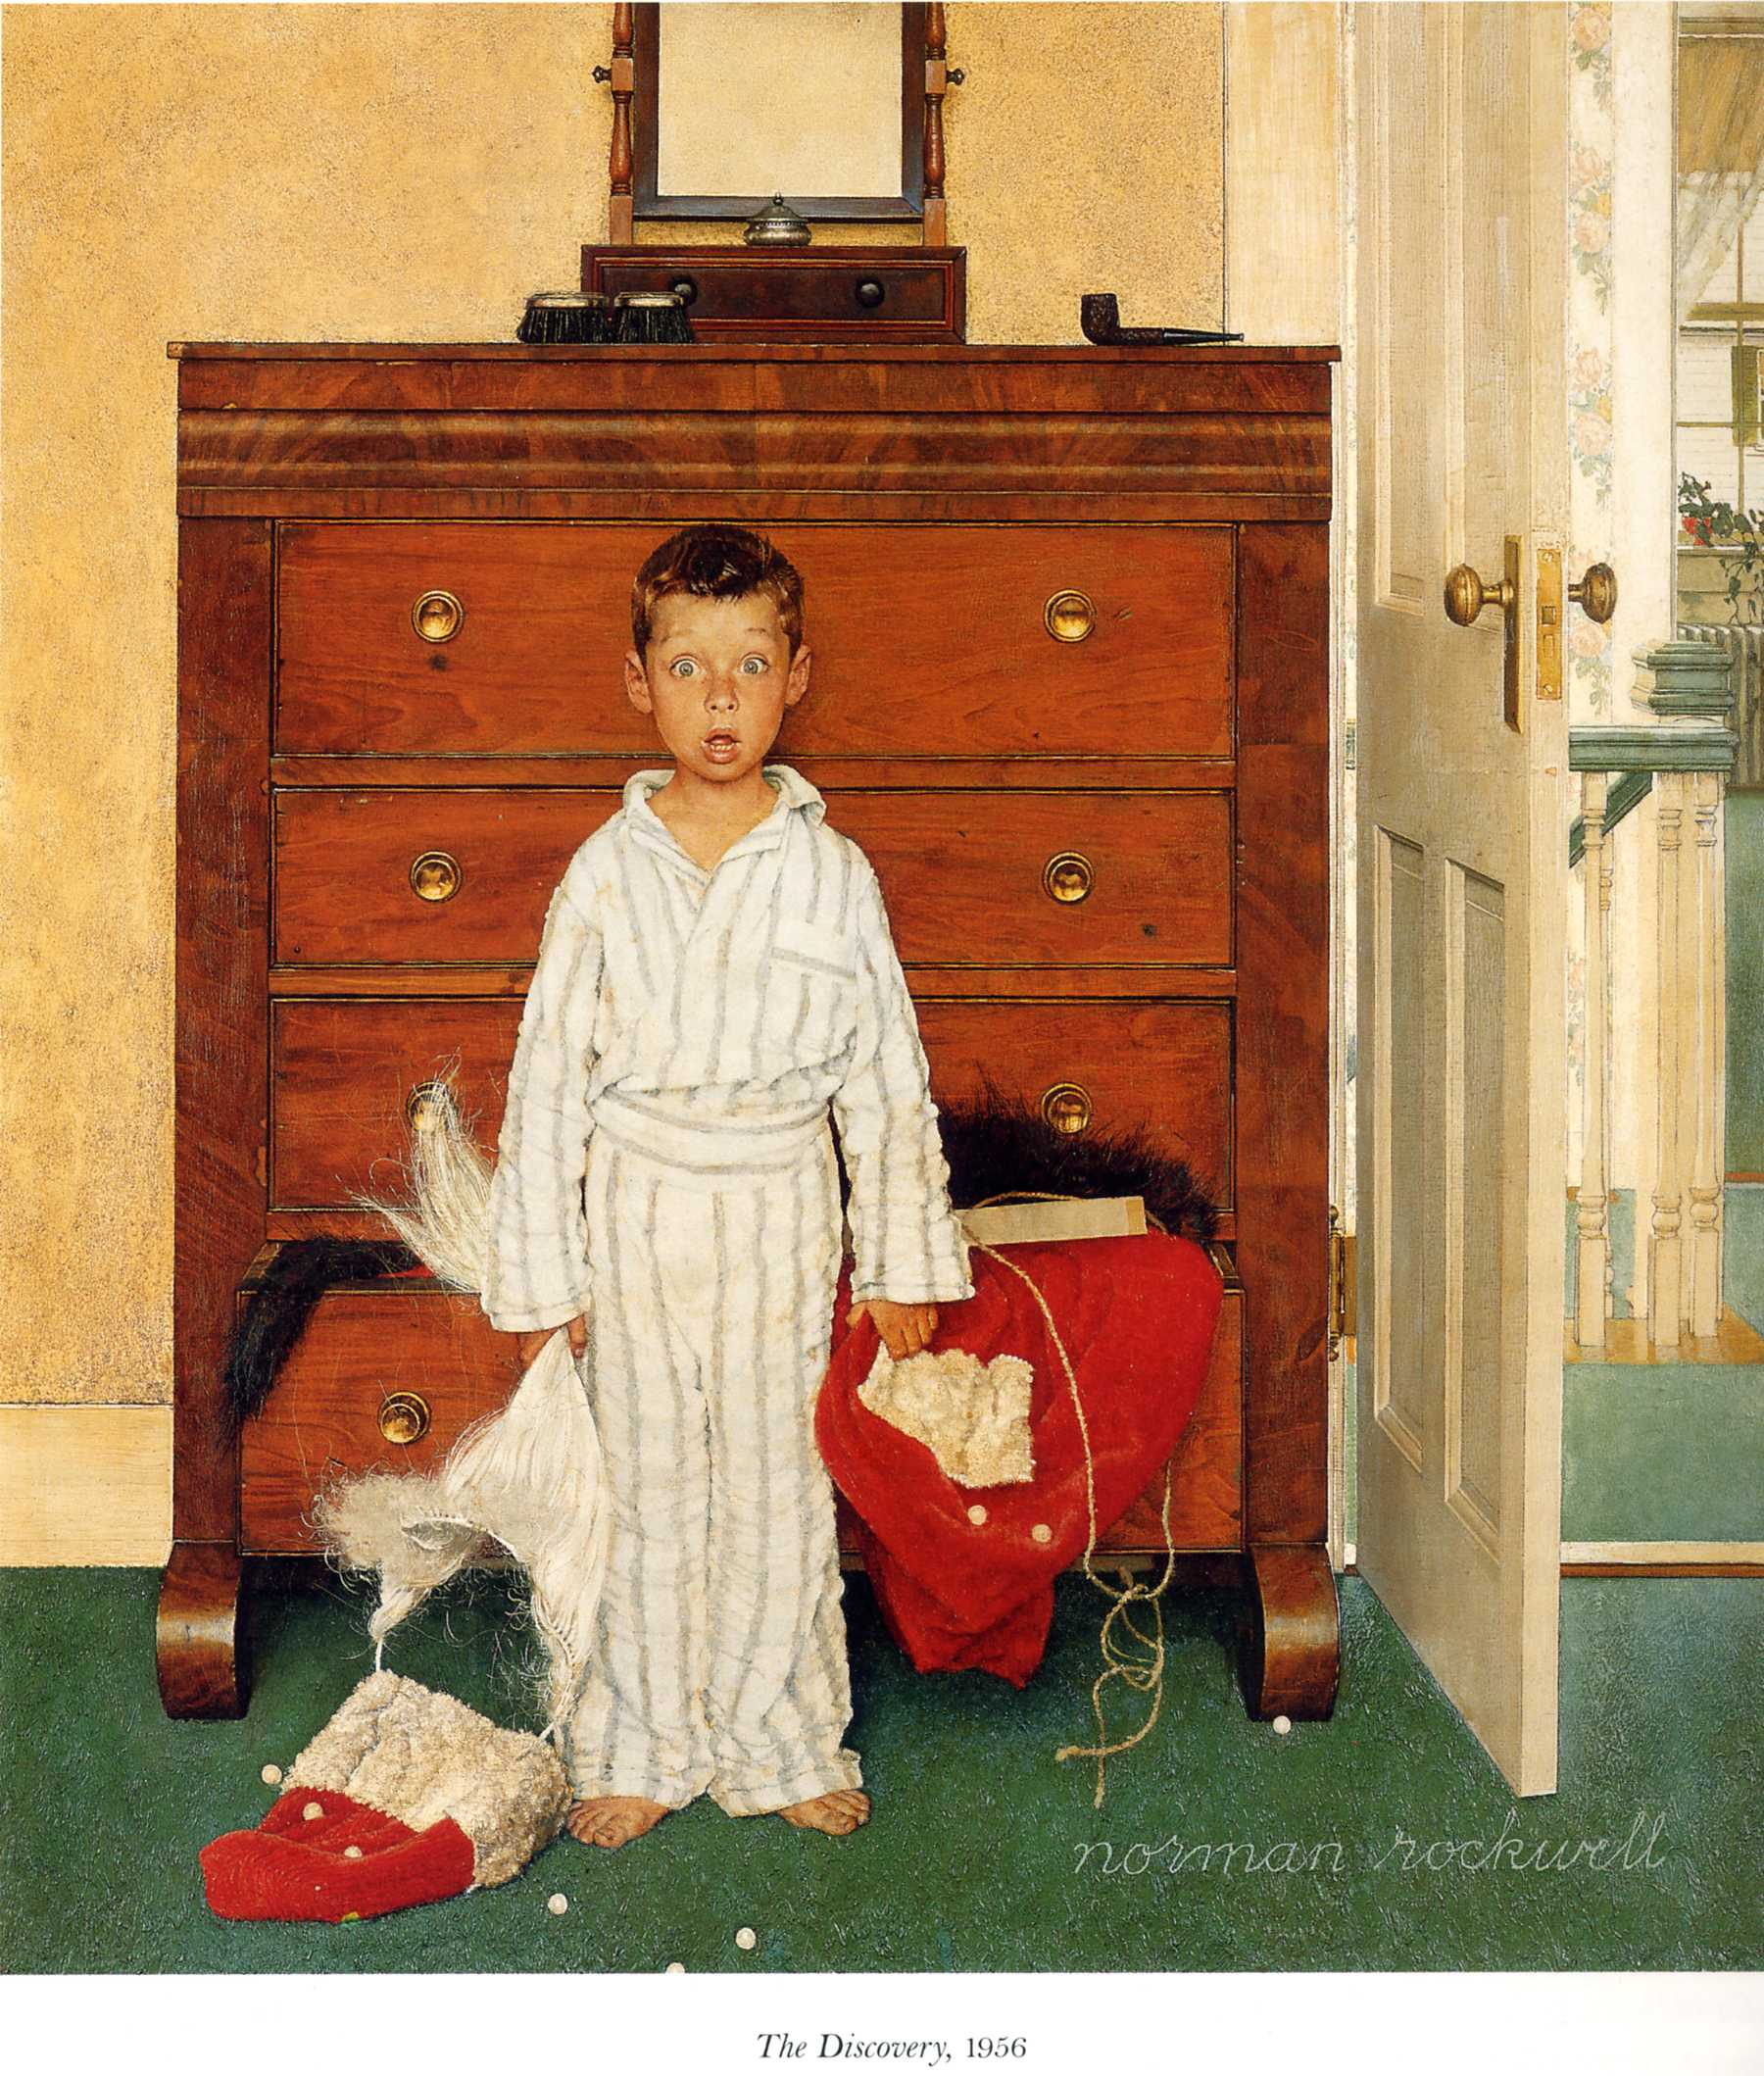 Norman Rockwell (1956)   The Discovery.  Oil on Canvas. Norman Rockwell Museum.  This was his final Saturday Evening Post Christmas cover.